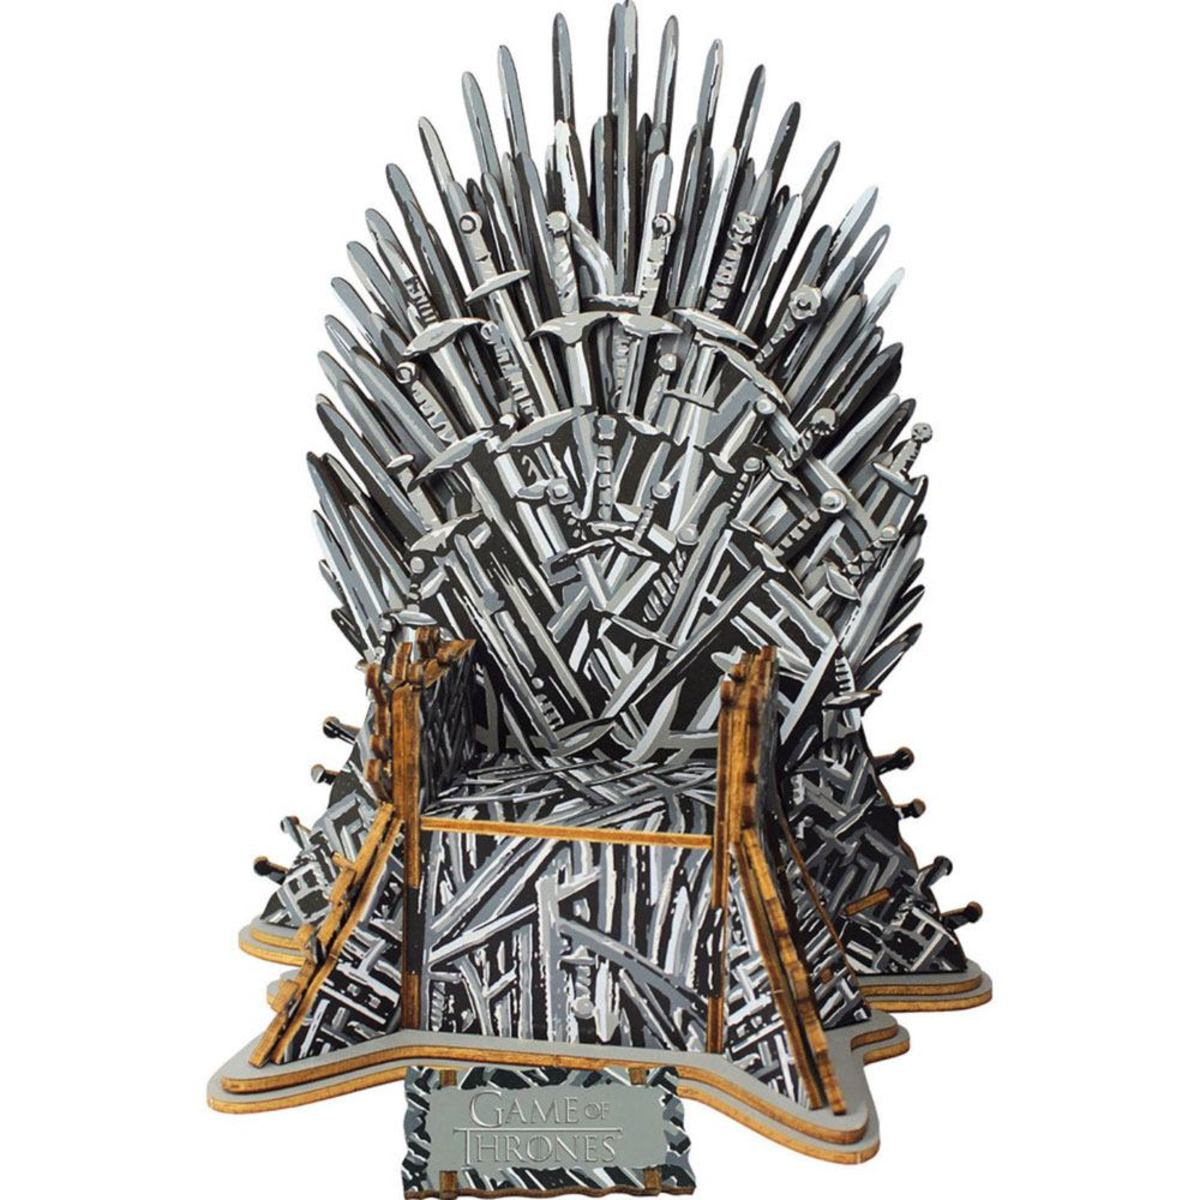 NNM Game of thrones 3D Monument